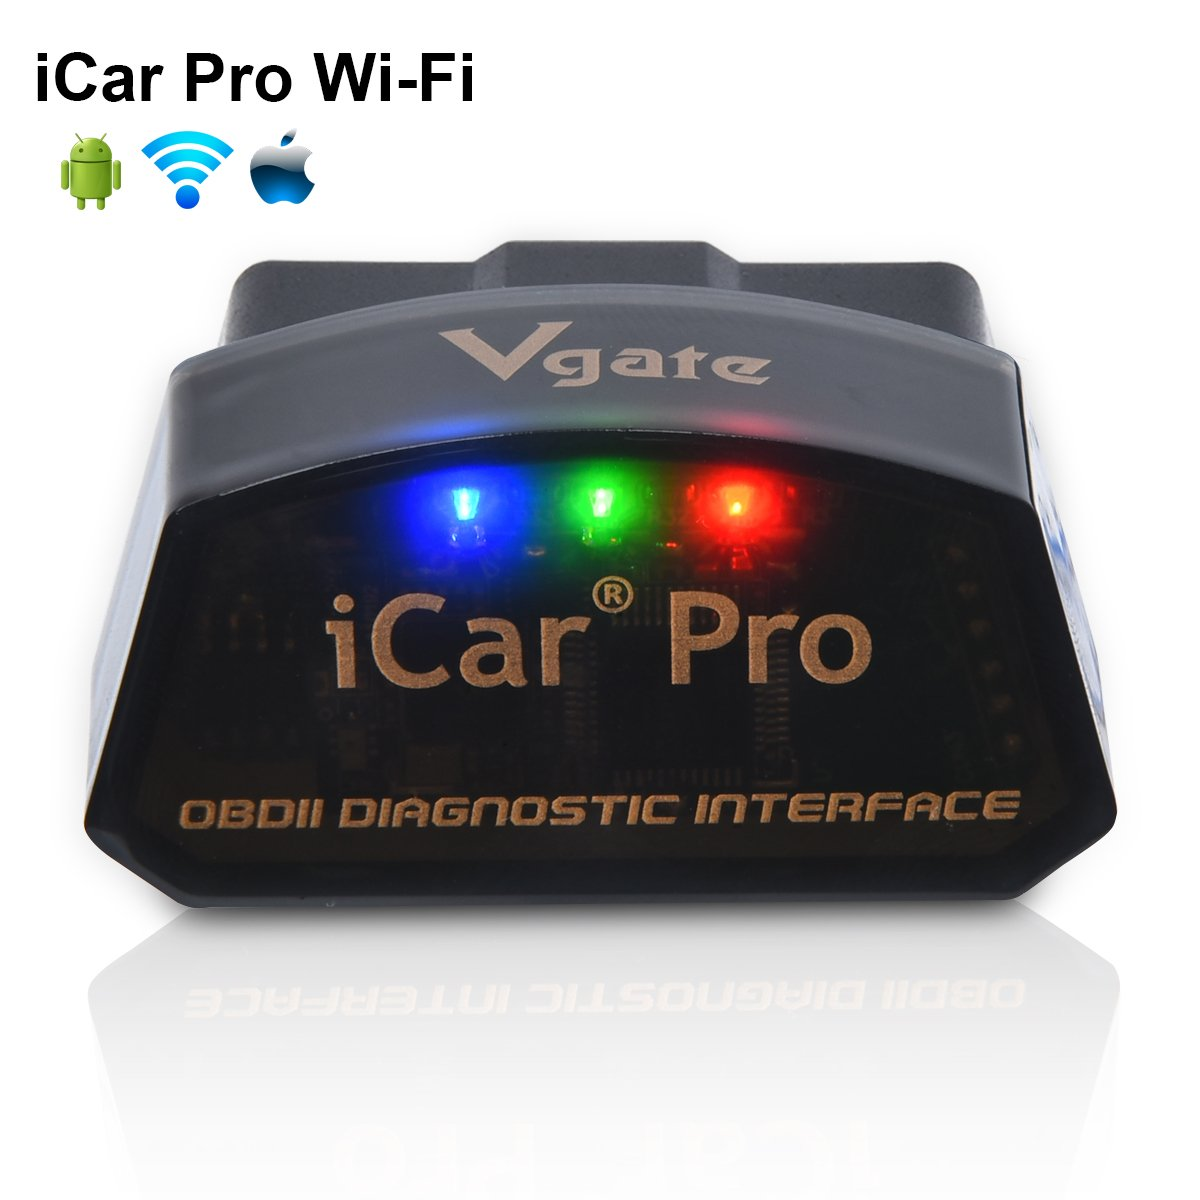 Vgate iCar Pro Wi-Fi OBD2 Scanner Scan Tools OBDII Car Diagnostic Tool Code Reader Fault Check Engine Light for iOS iPhone iPad/Android Compatible with ELM327 Adapter